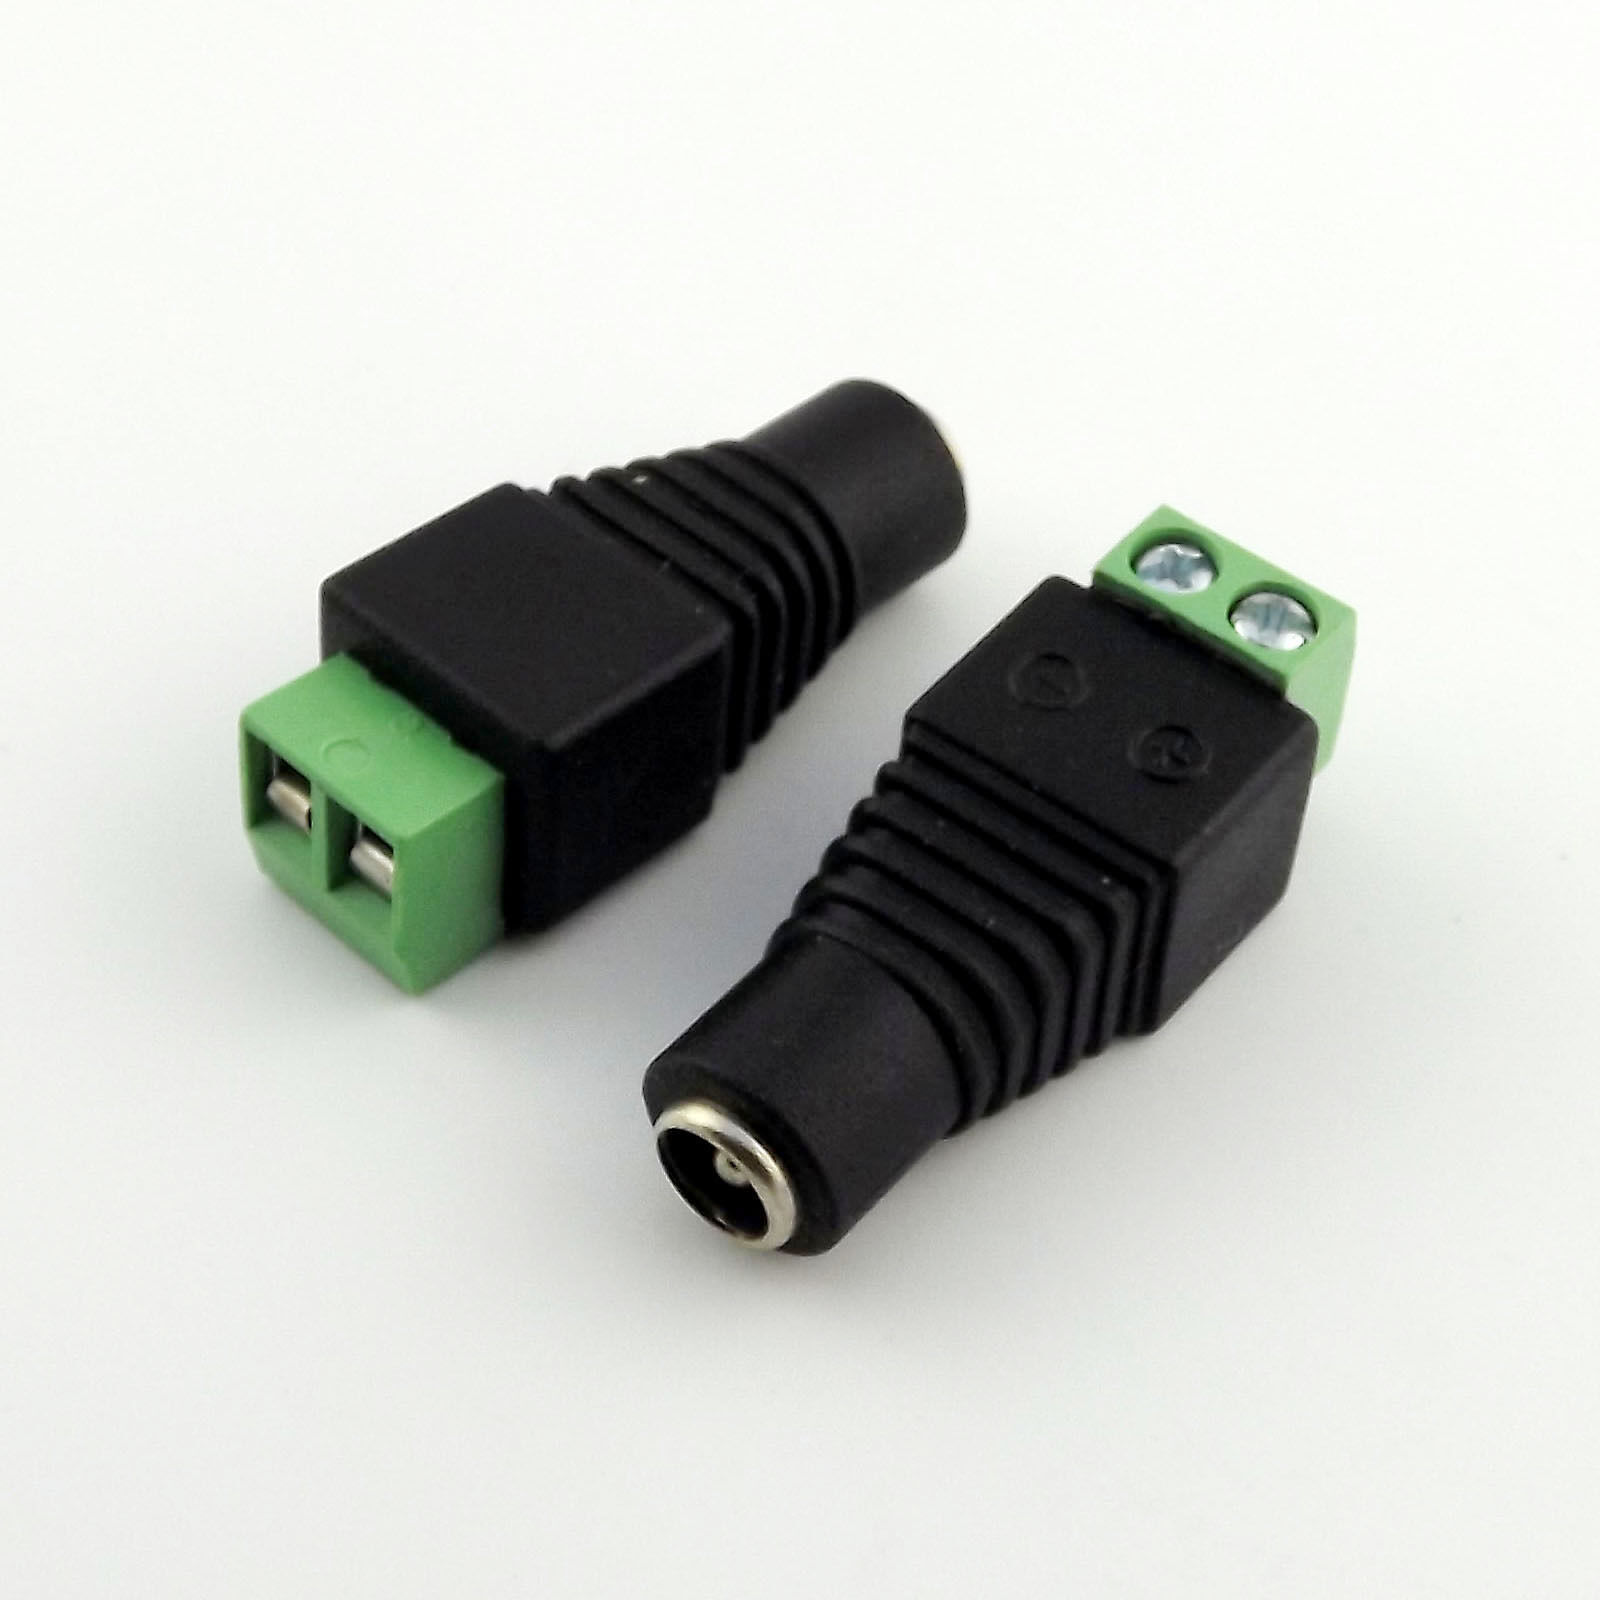 DC Adapter Cord 5.5 x 2.5mm Female to 3x 5.5mmx 2.5mm Connector Y Splitter Cable